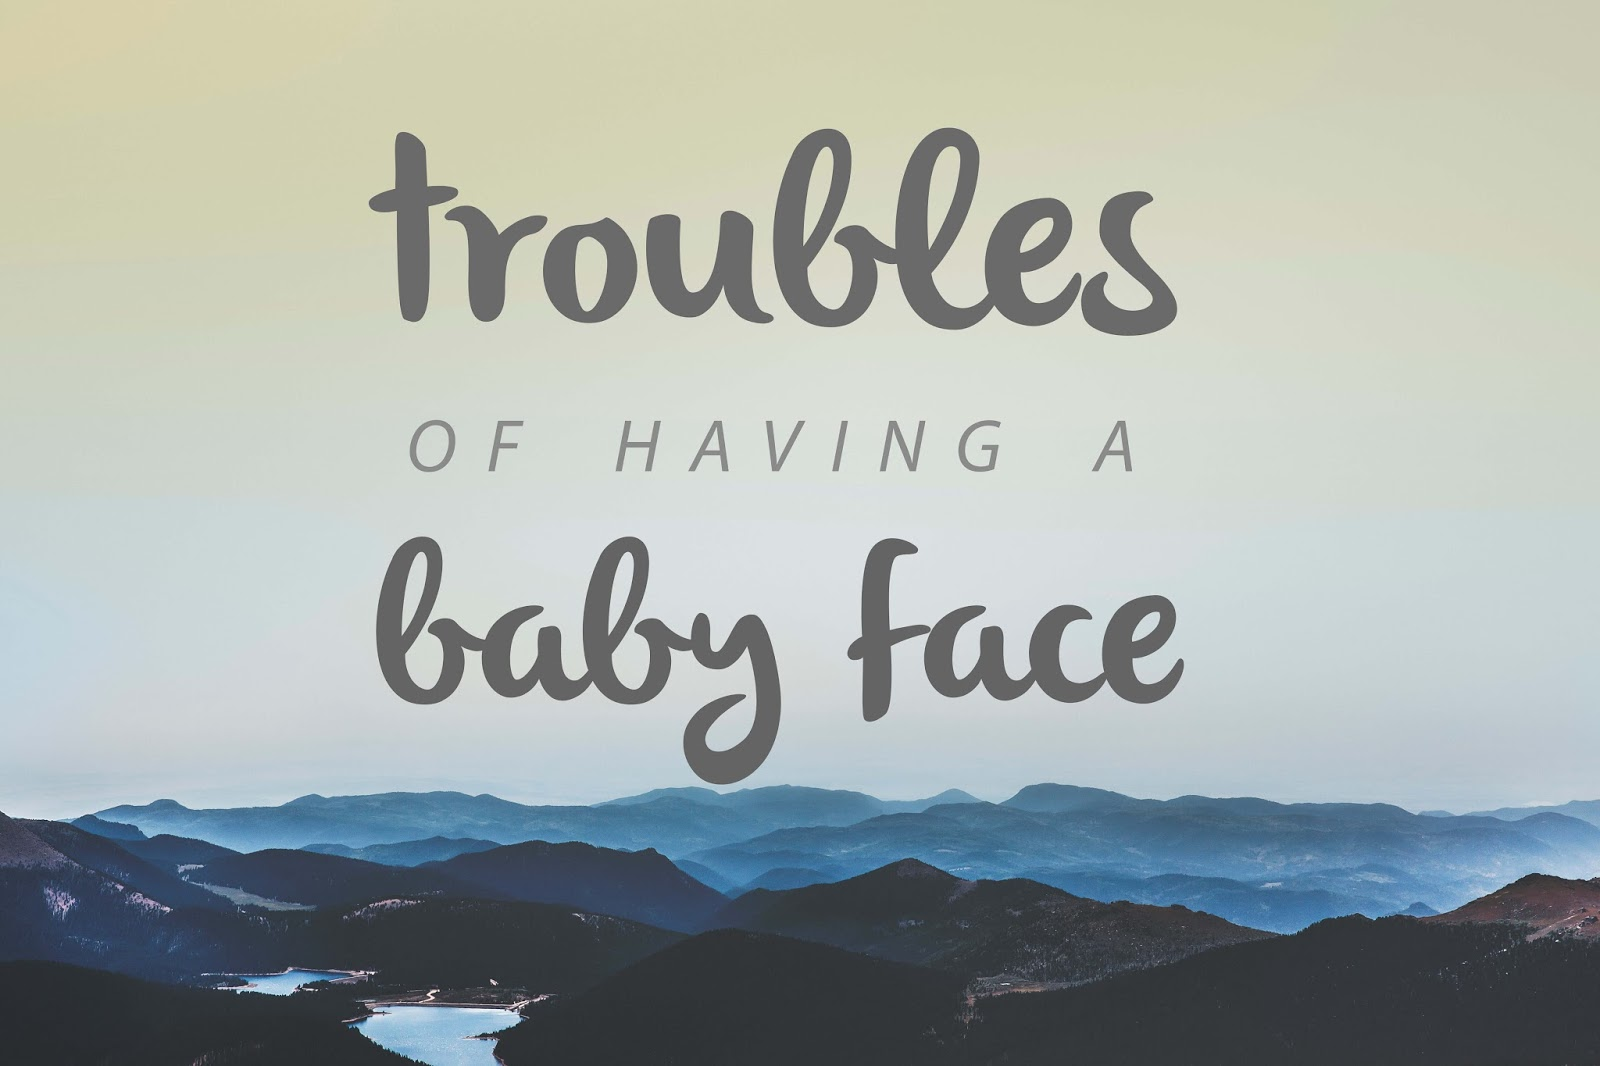 troubles of having a baby face